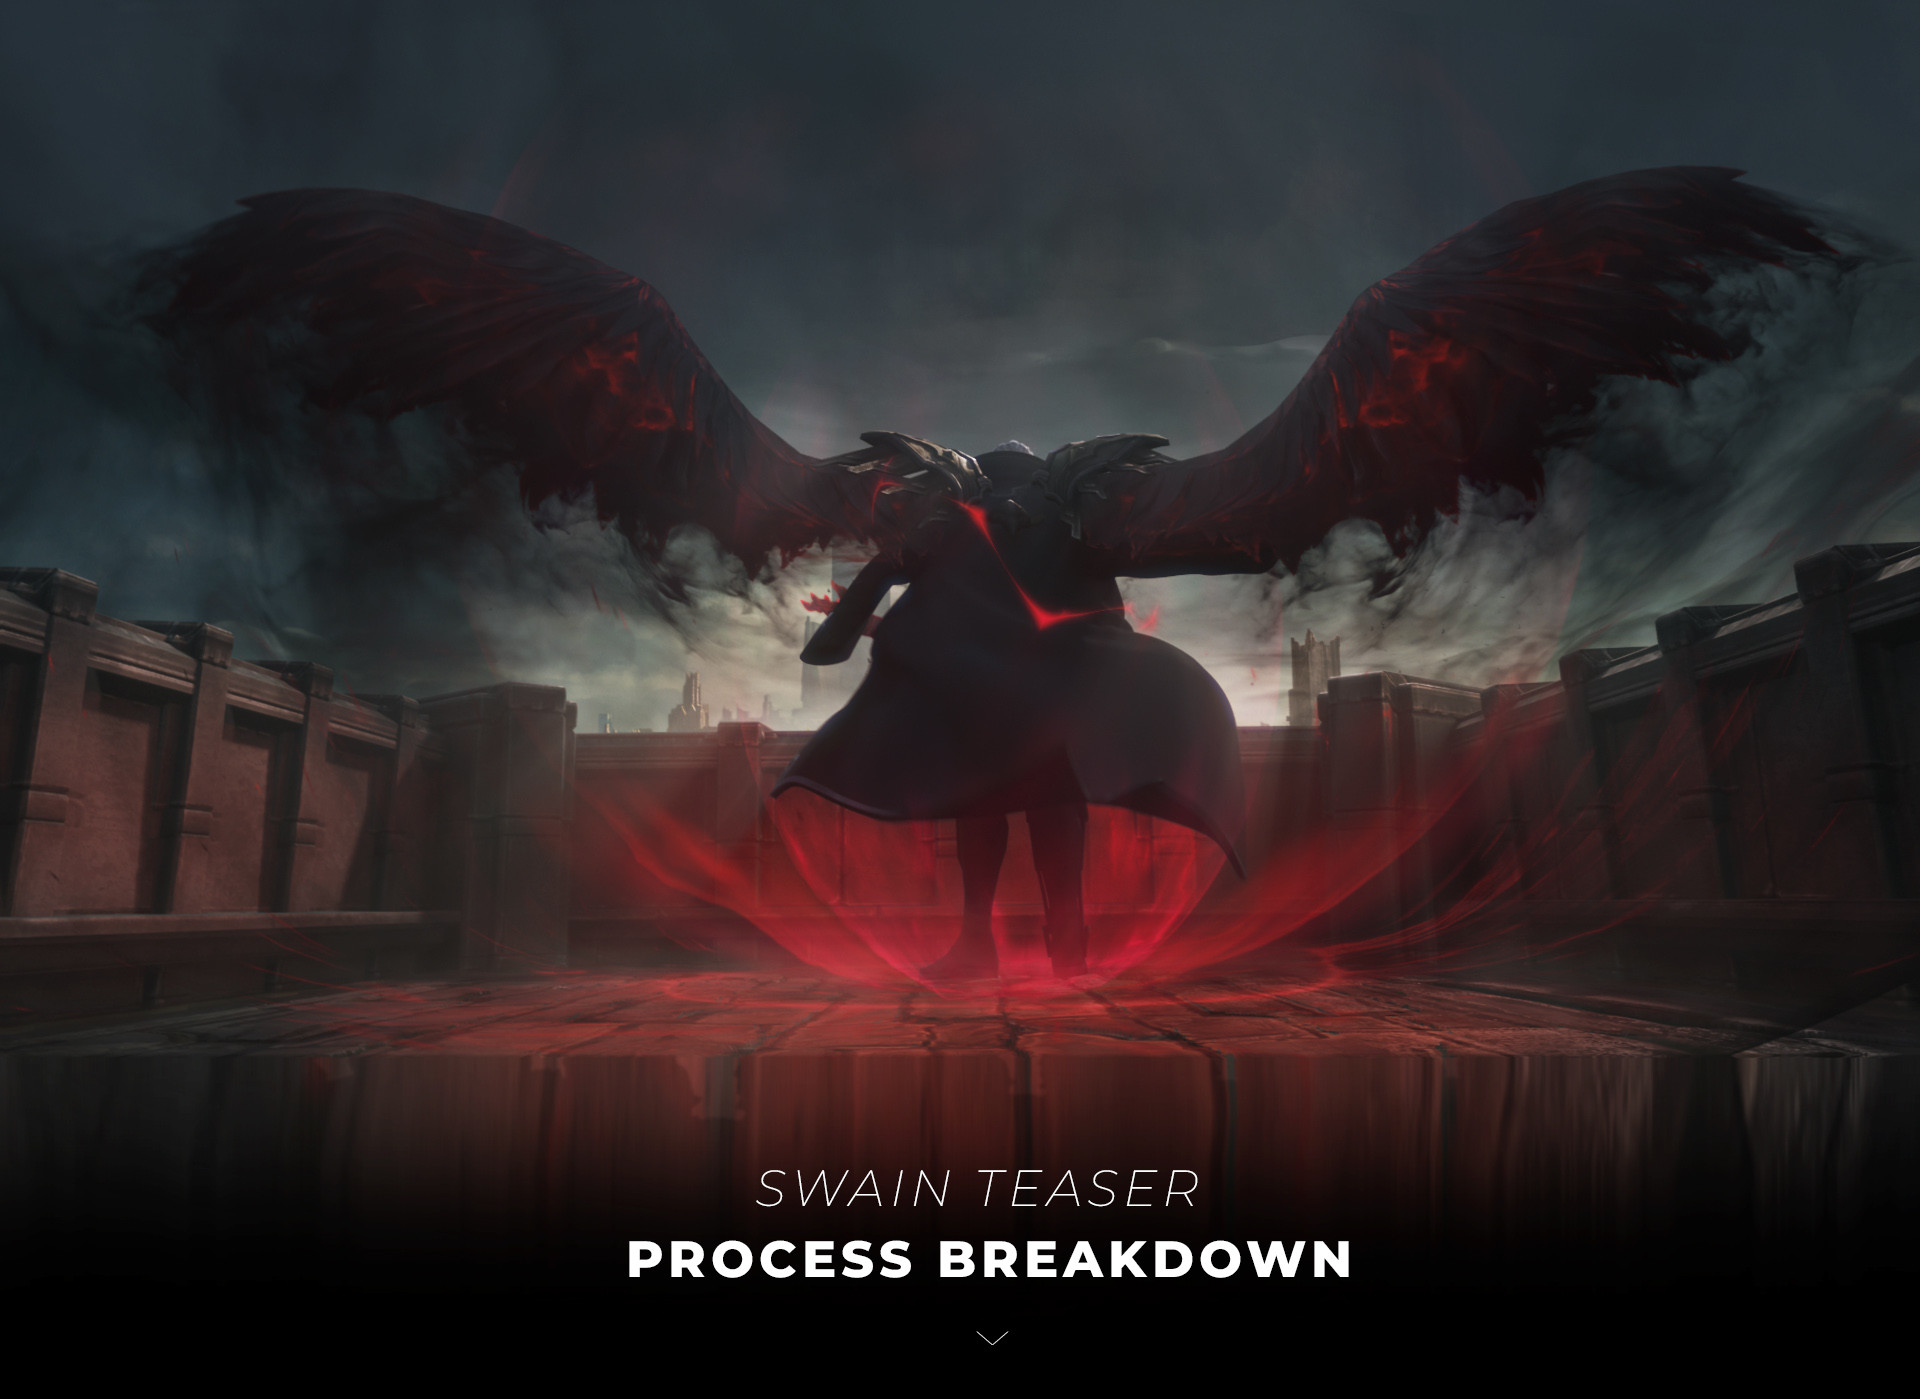 Efflam mercier swain teaser breakdown copy